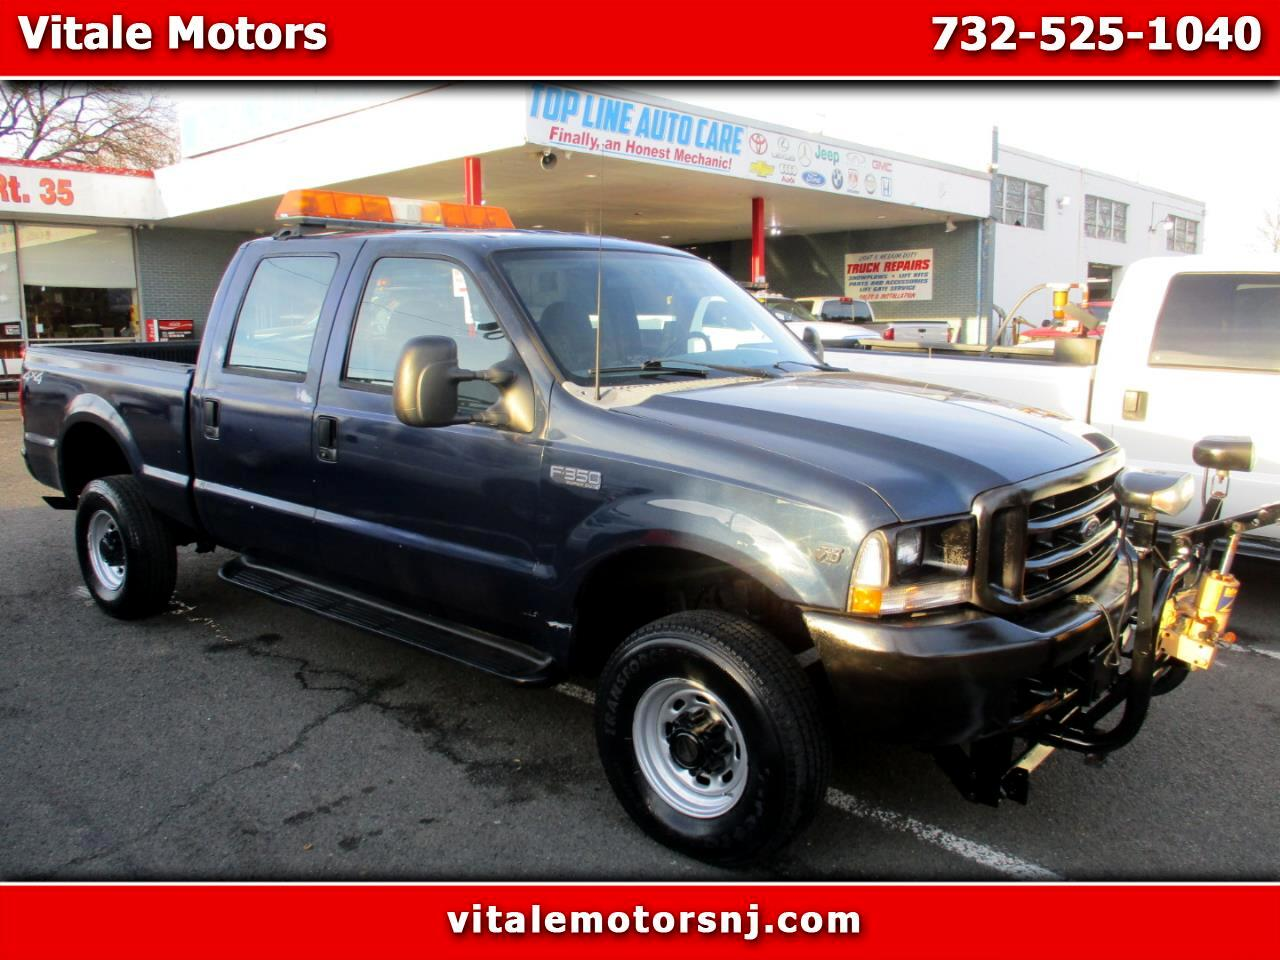 2002 Ford F-350 SD SNOW PLOW! 26K MILES CREW CAB 4X4 6' BED